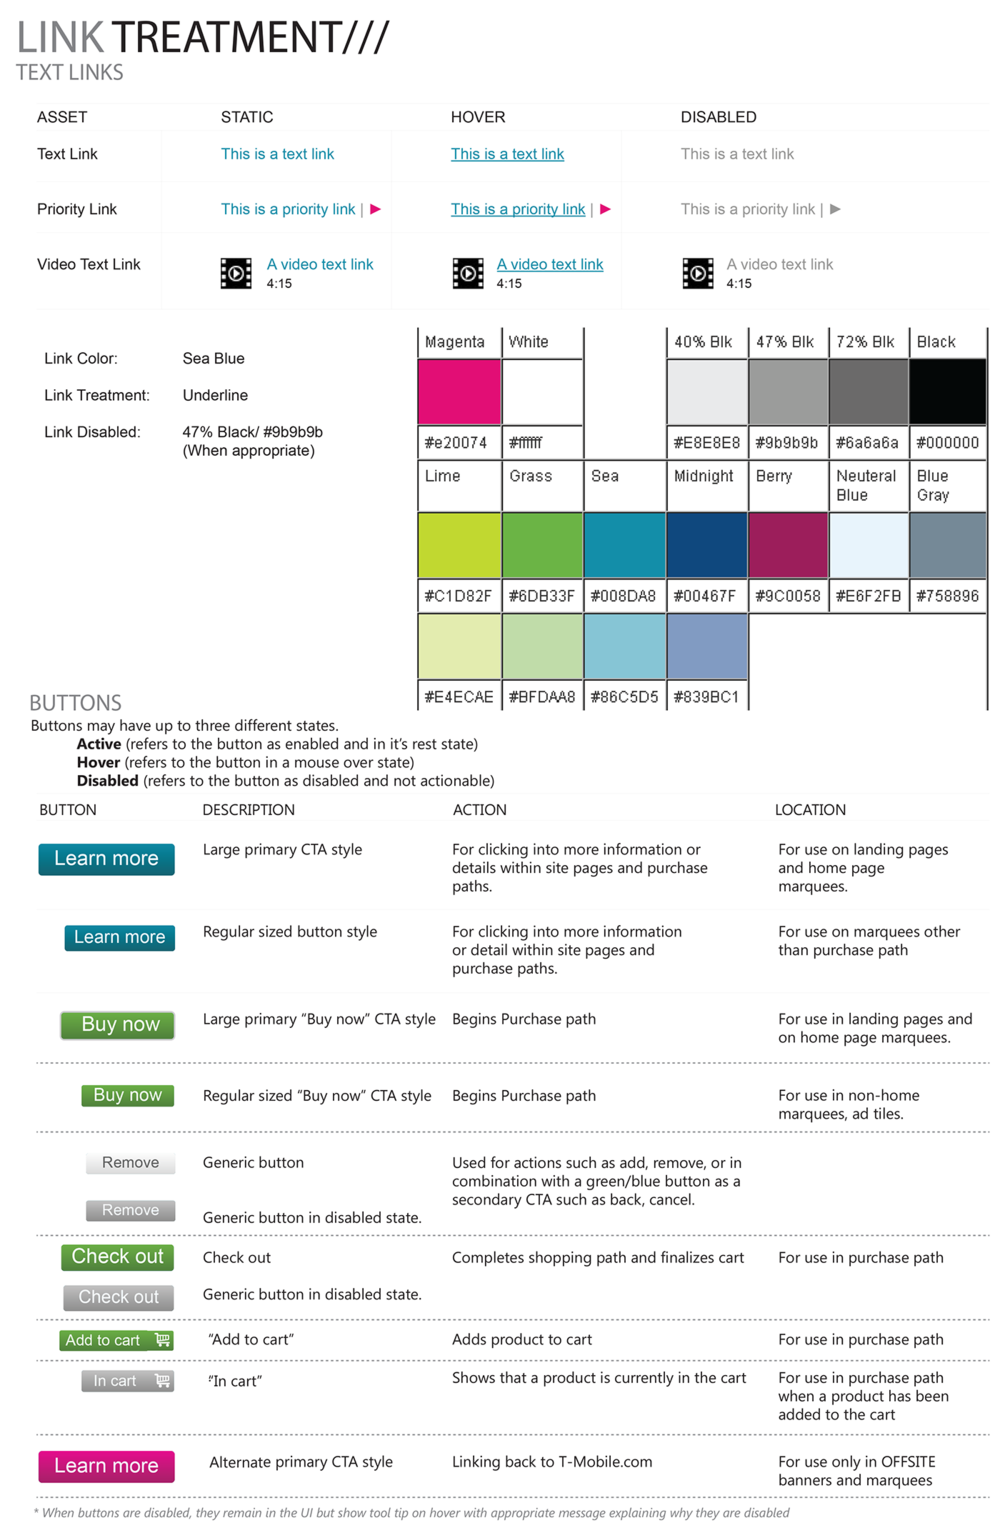 T-Mobile Style guide unification